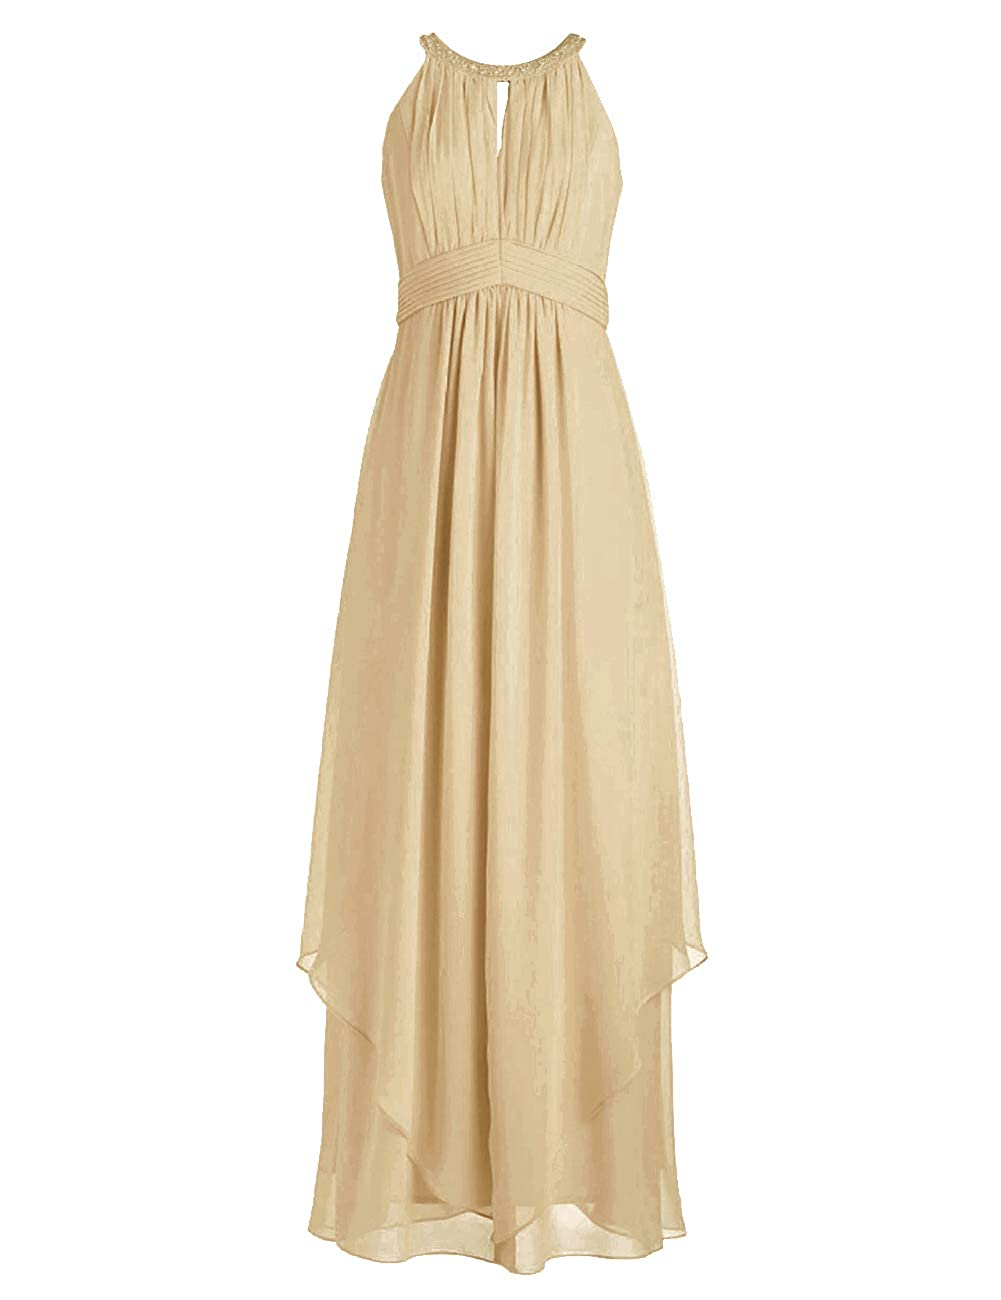 Champagne Bridesmaid Dresses Halter Evening Party Dress Long Bridesmaid Gowns Ruffles